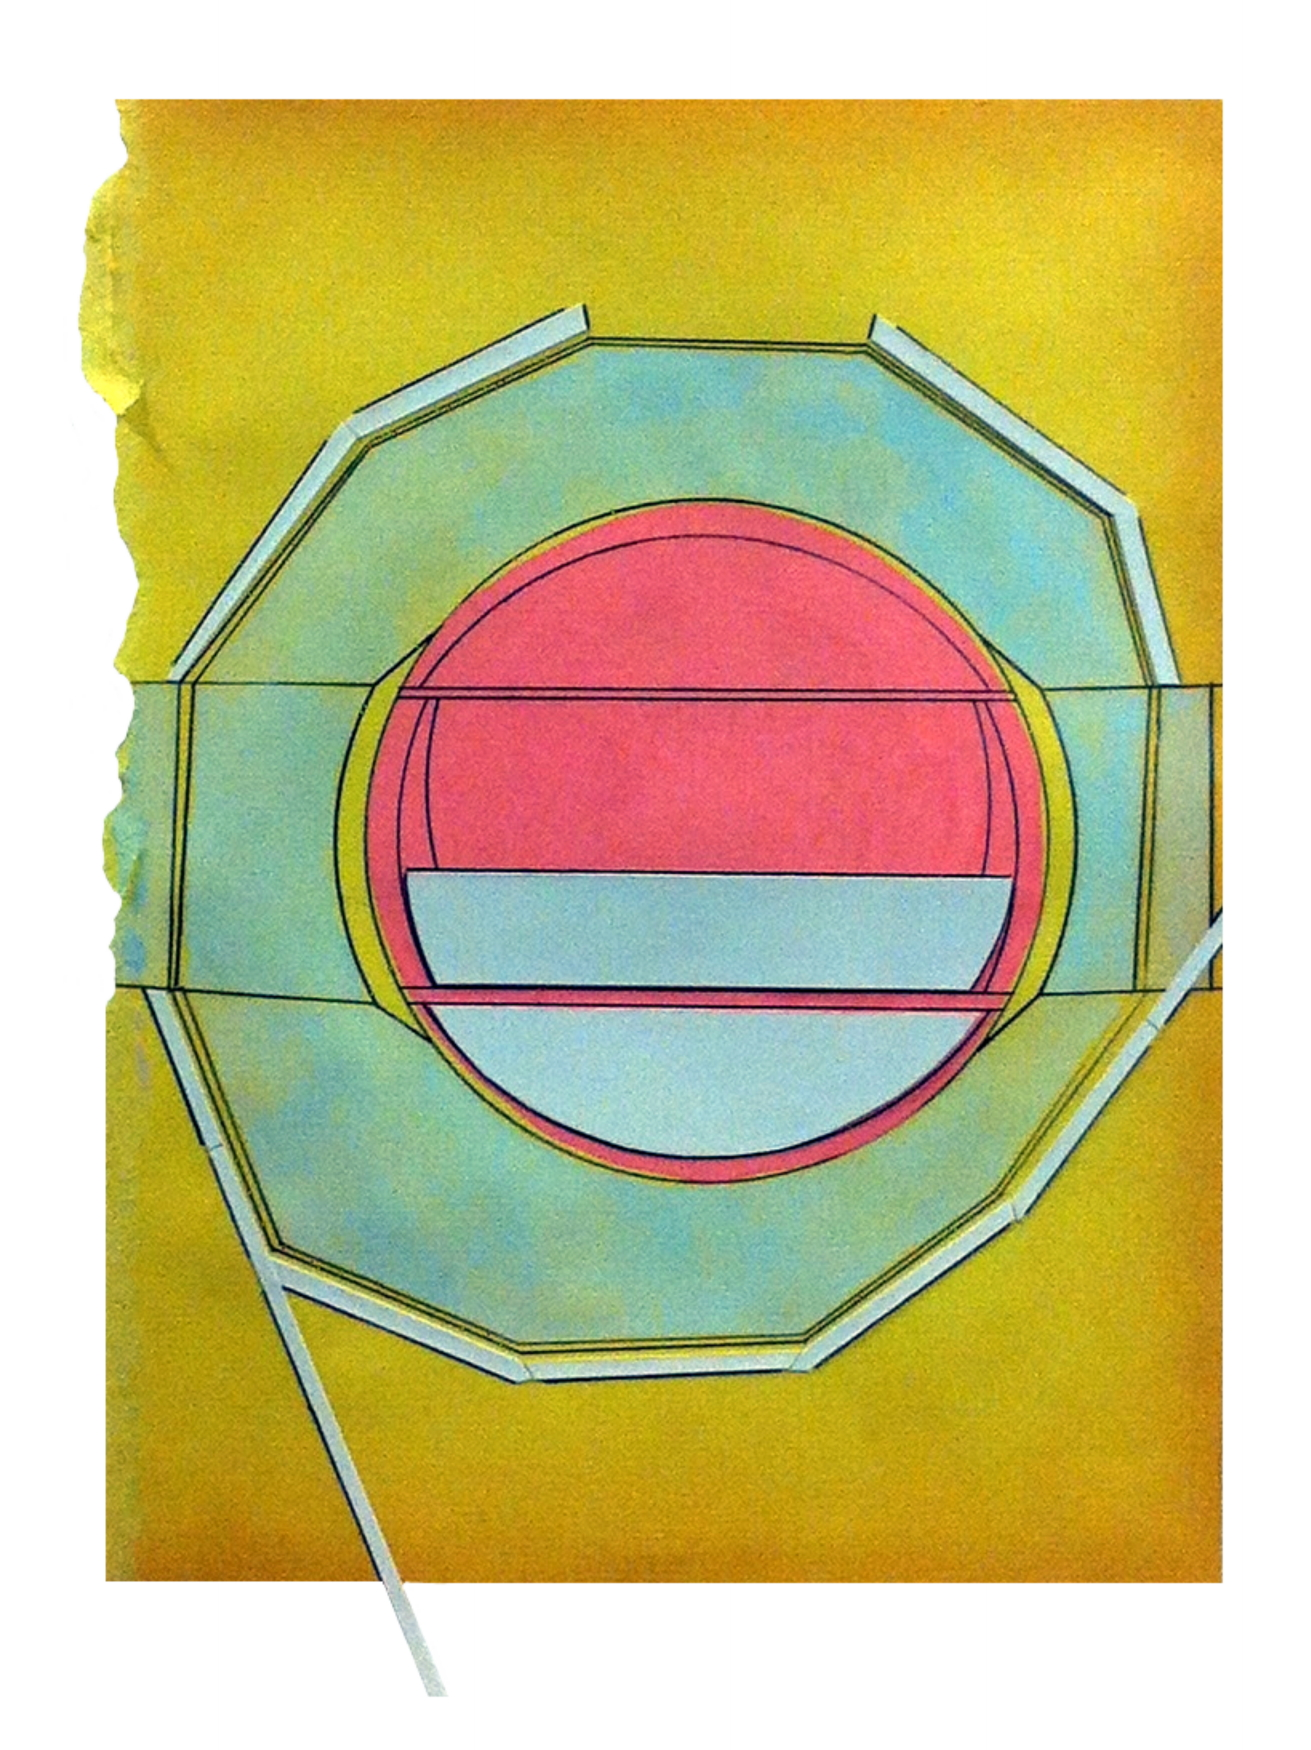 Local  , 2015  pencil, gouache, collage on found paper  10.75 x 7.5 inches